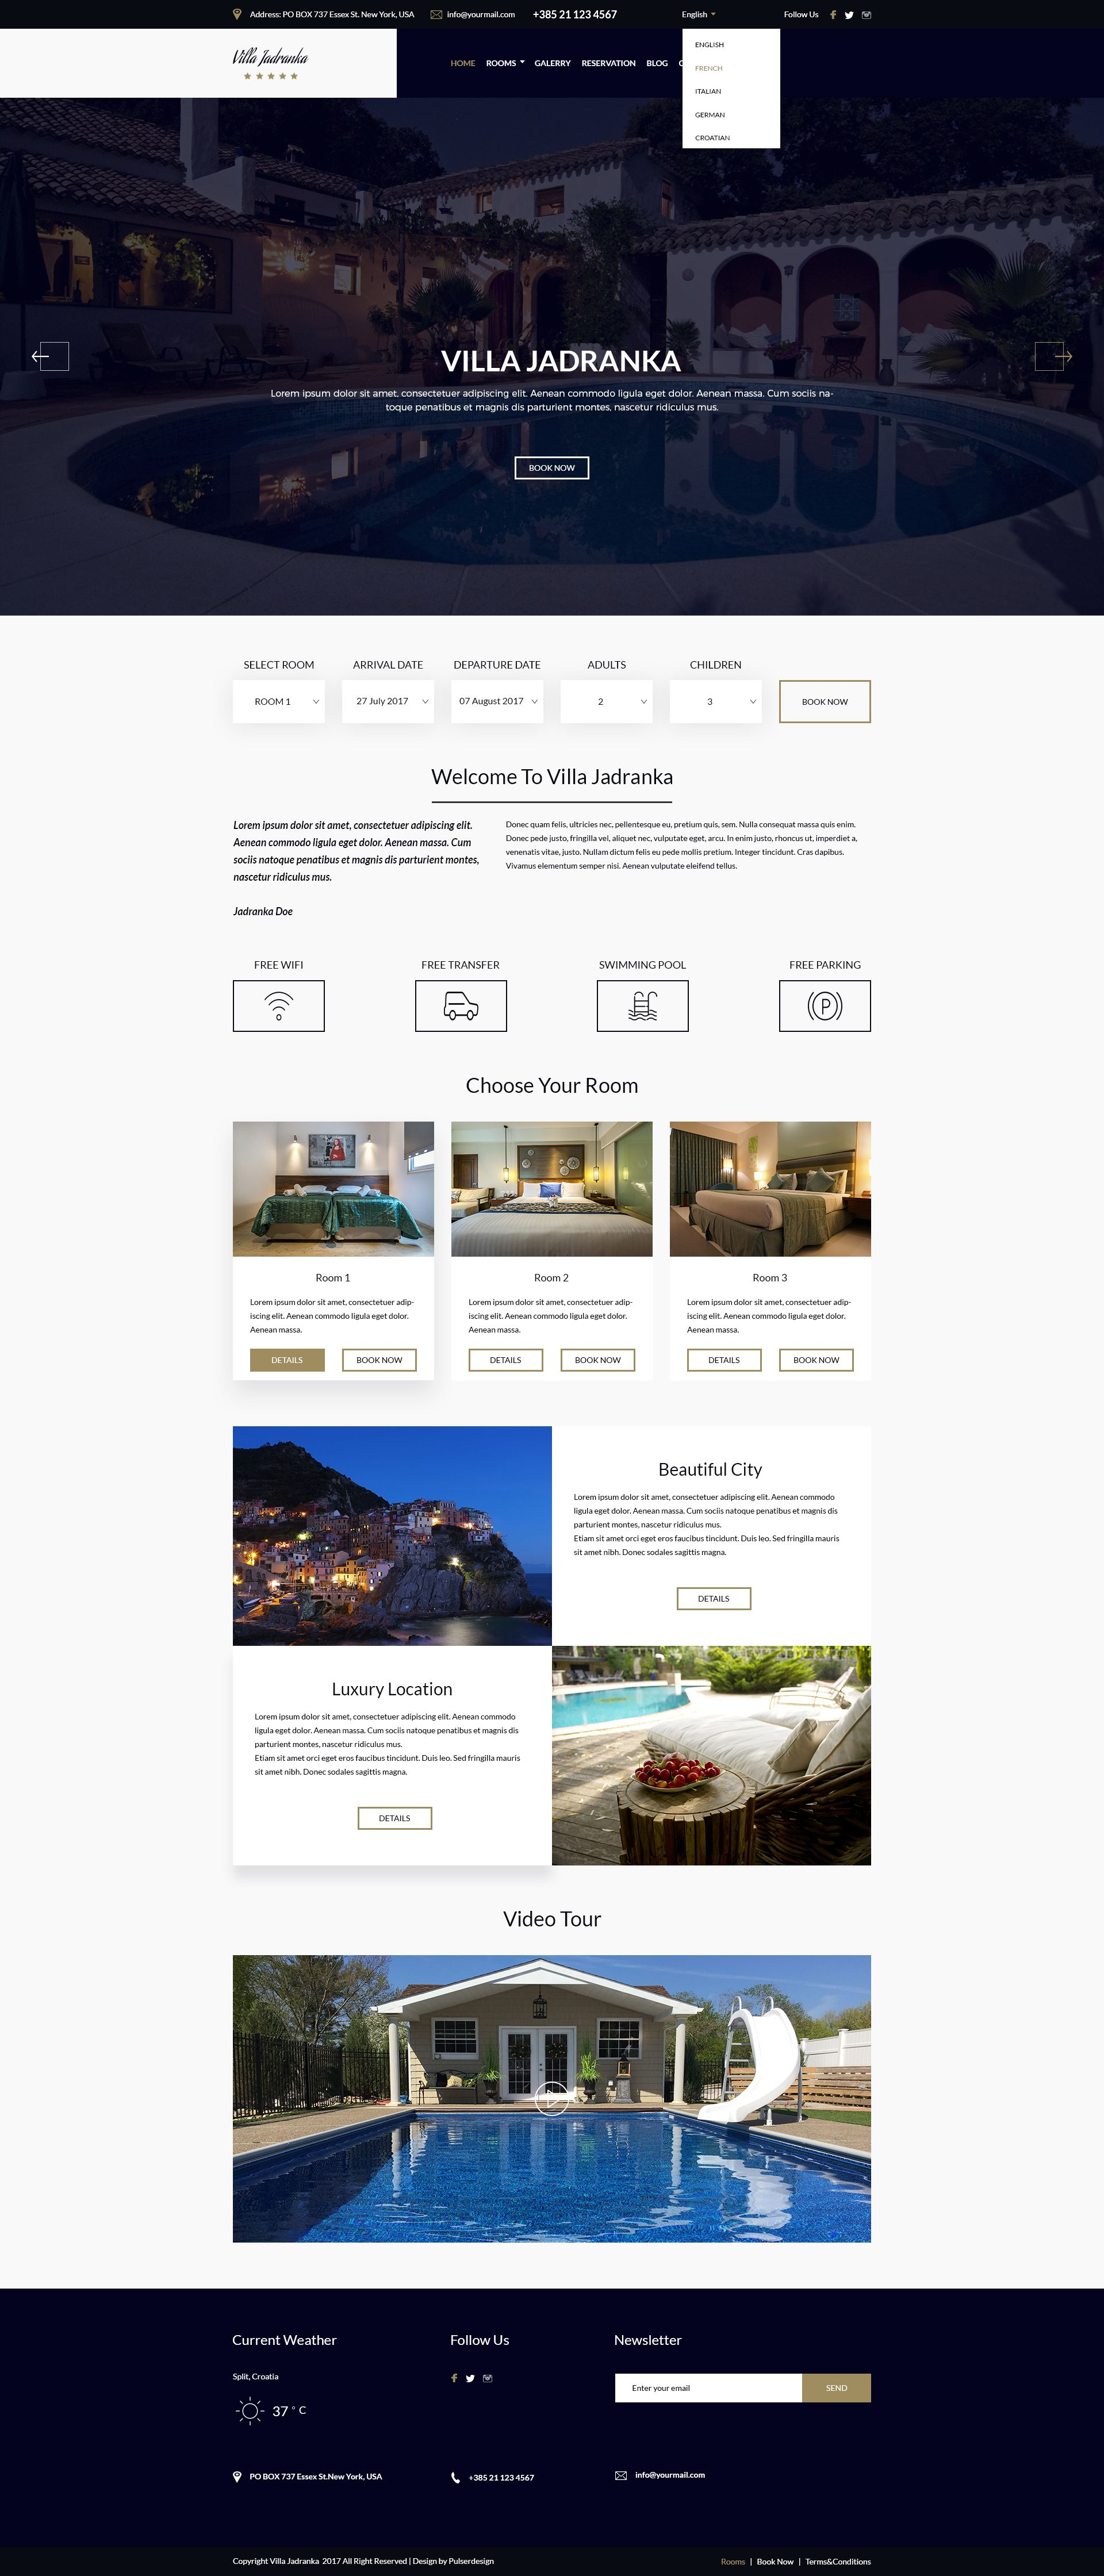 Villa Jadranka - Website PSD Template Screenshot 6